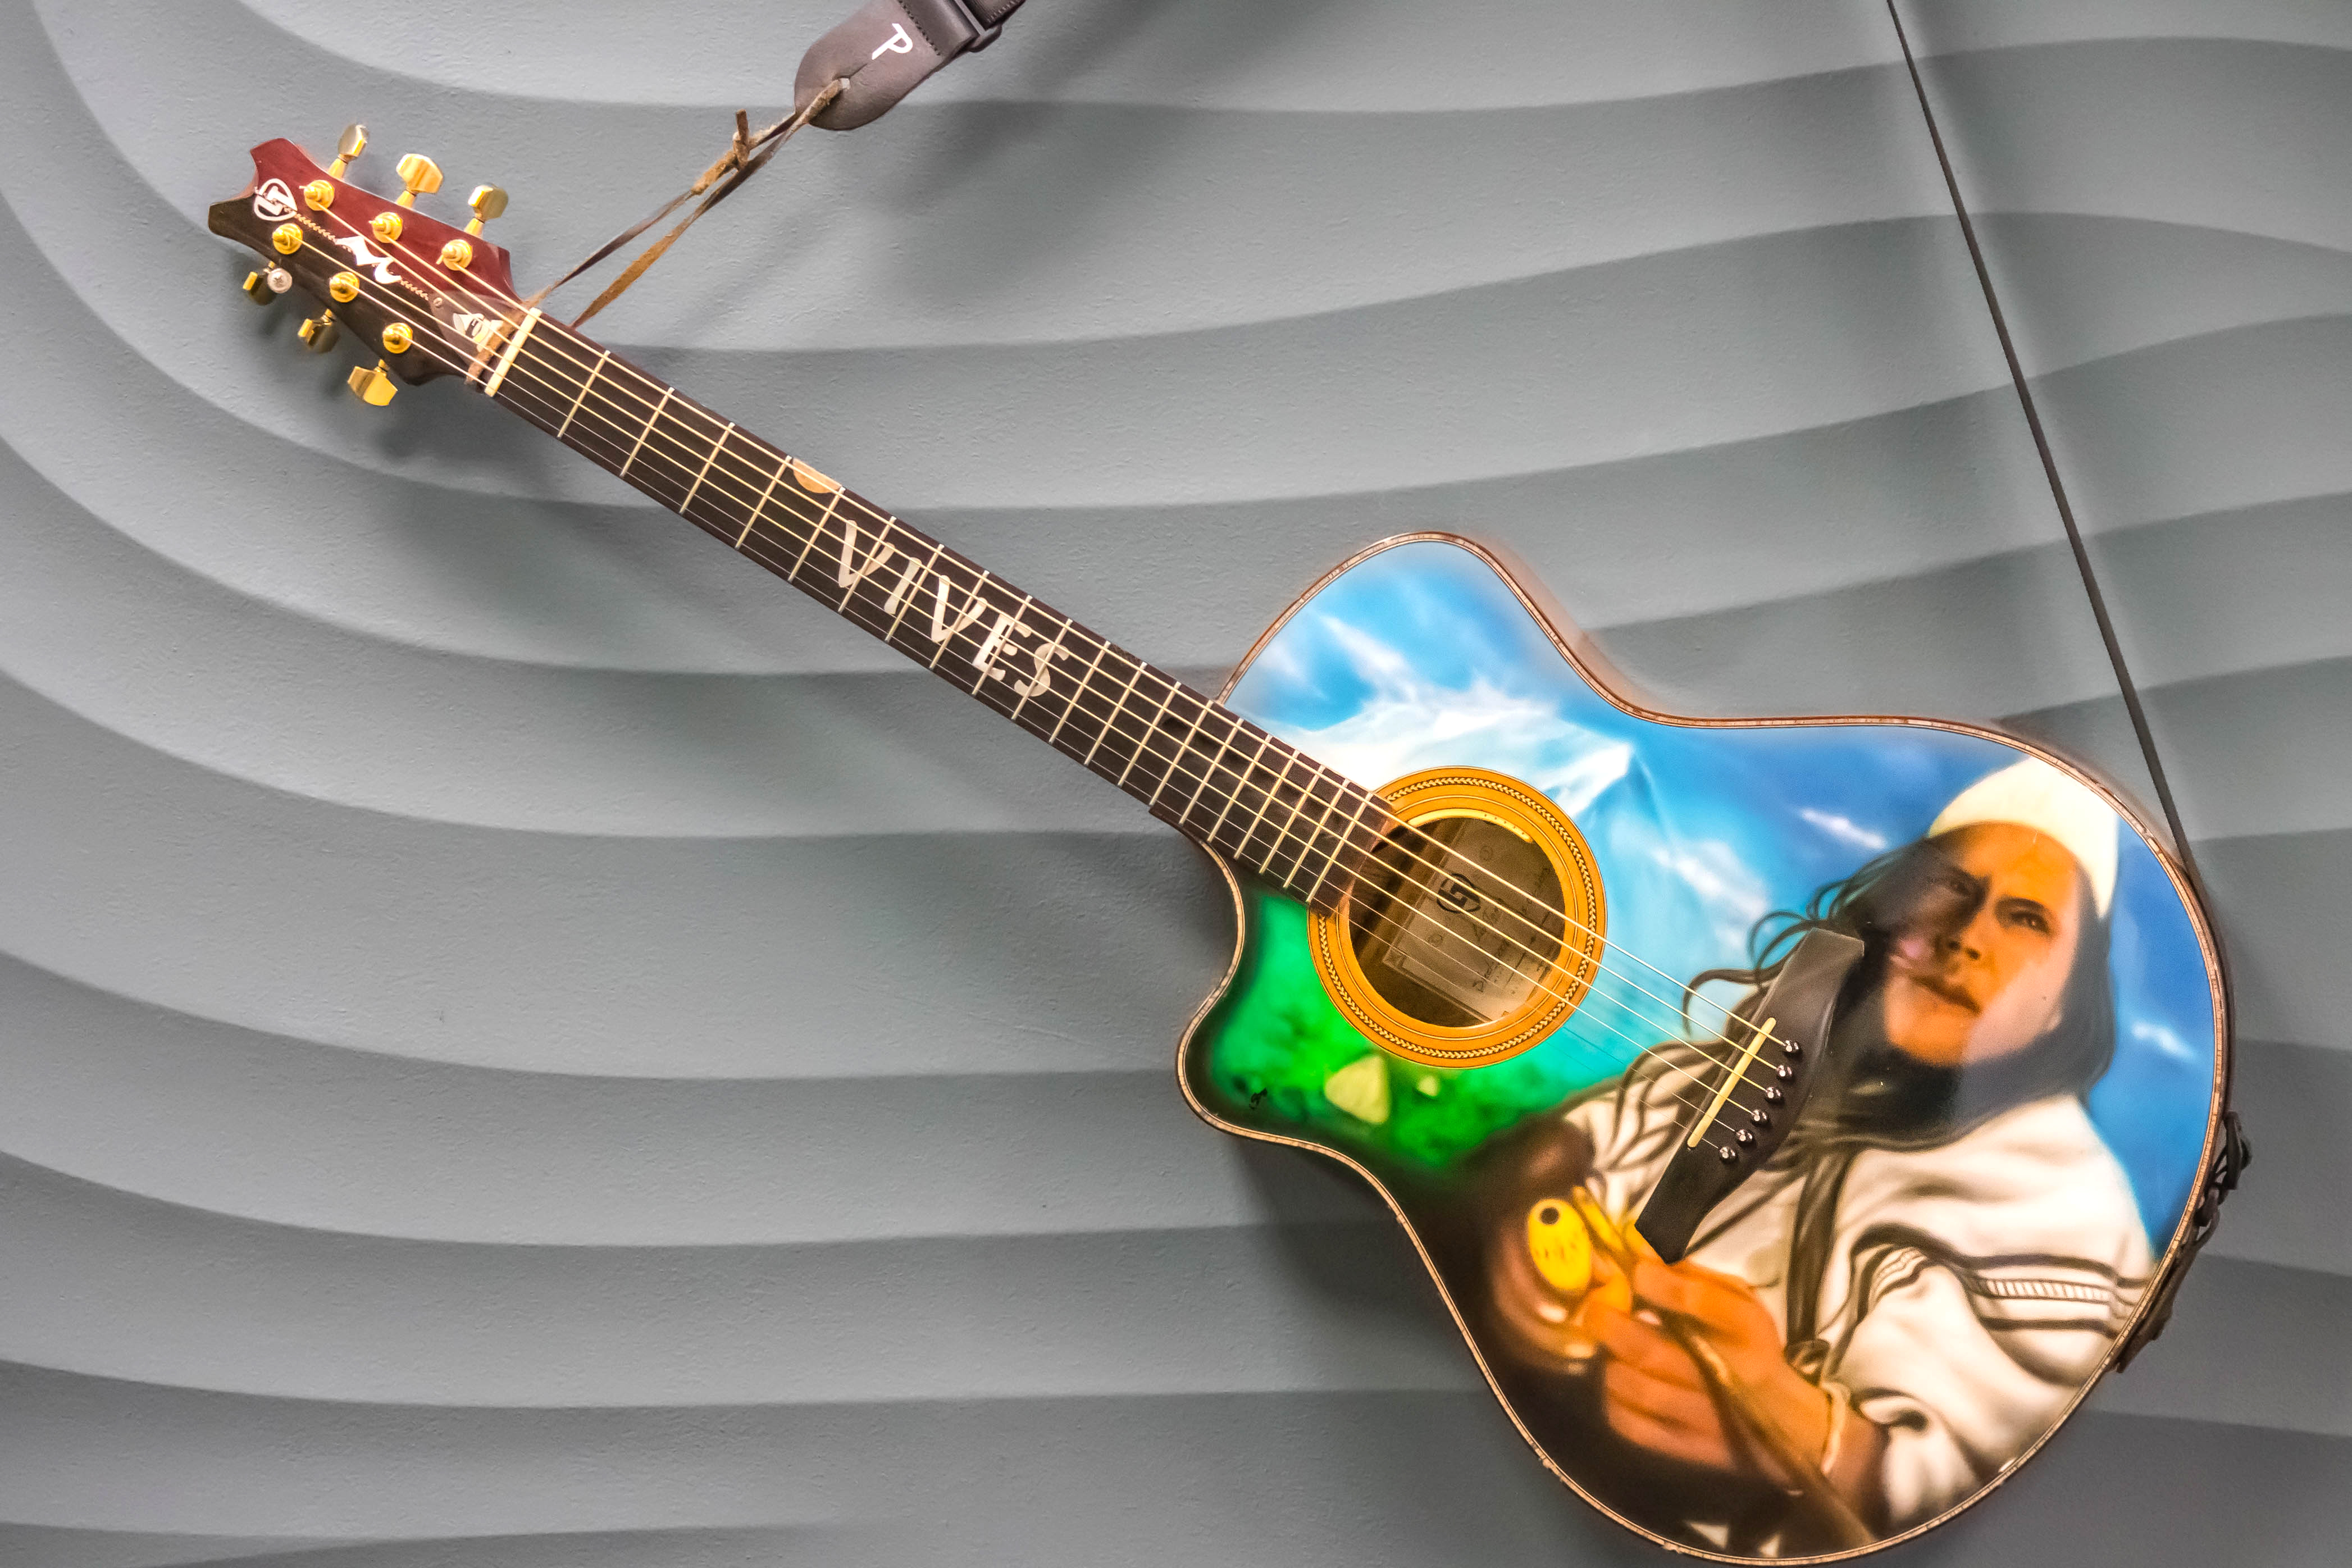 Guitar with portrait of Vives painted on it